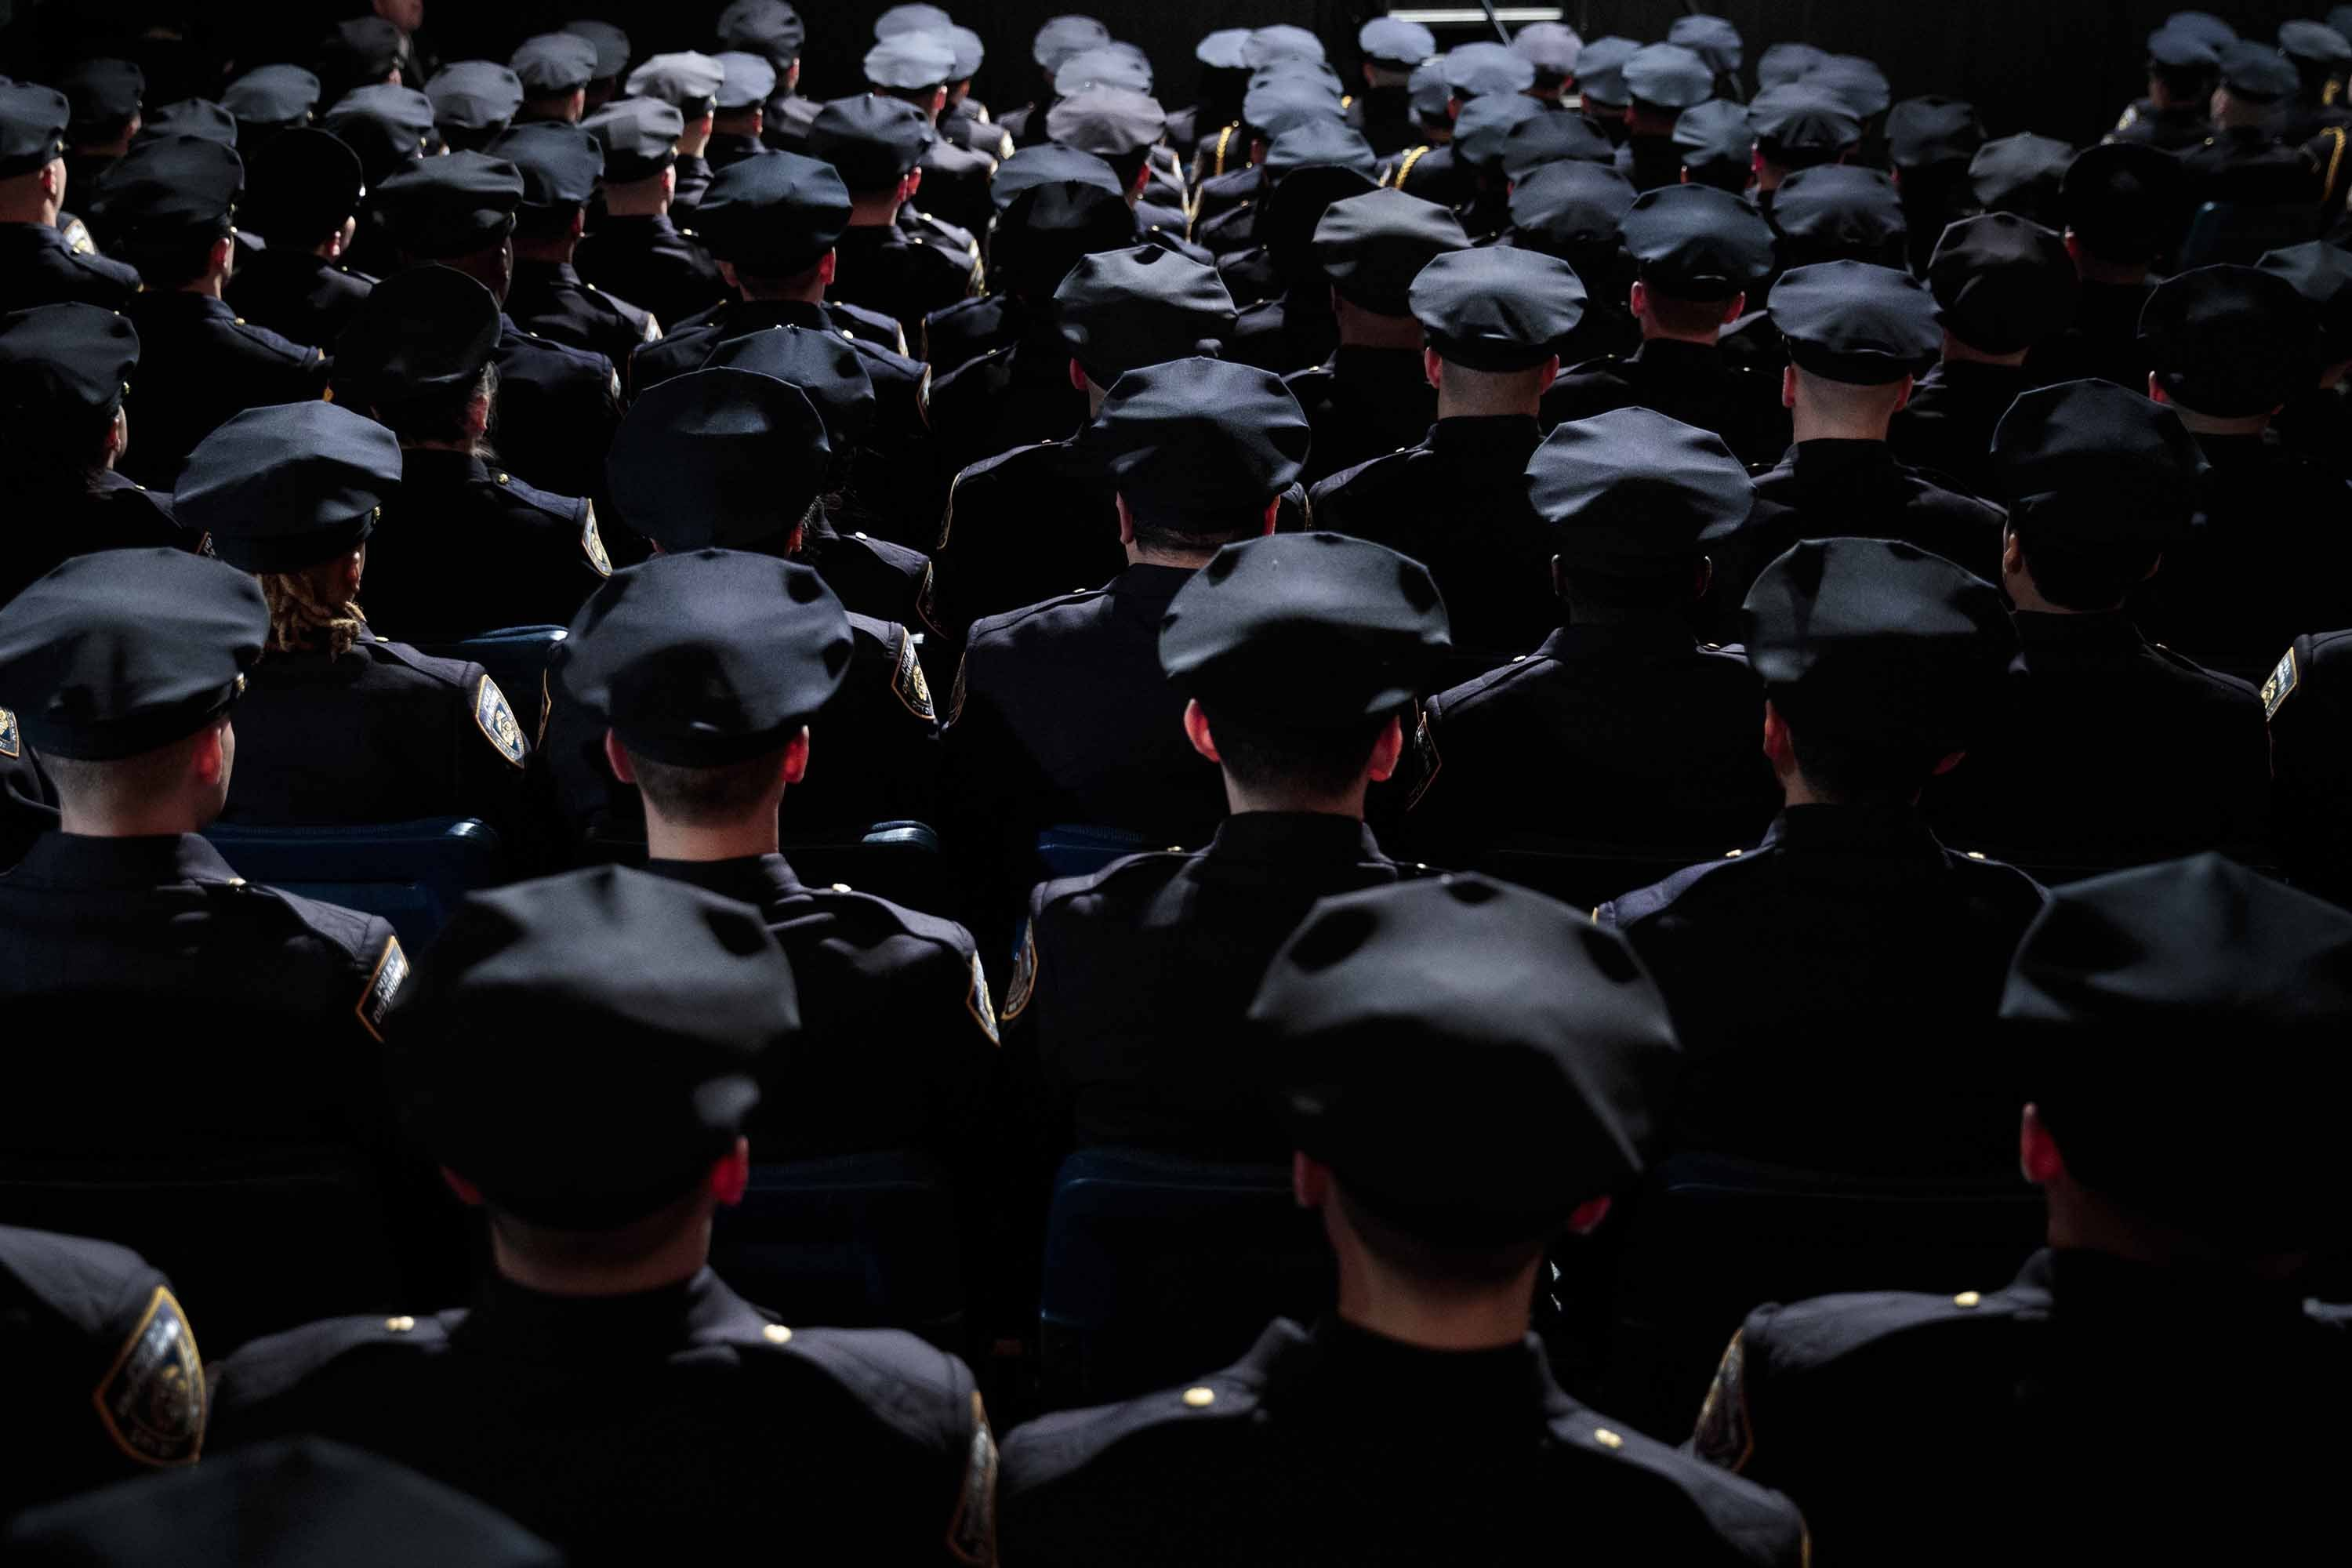 The number of NYPD officer suicides this year rises to 10